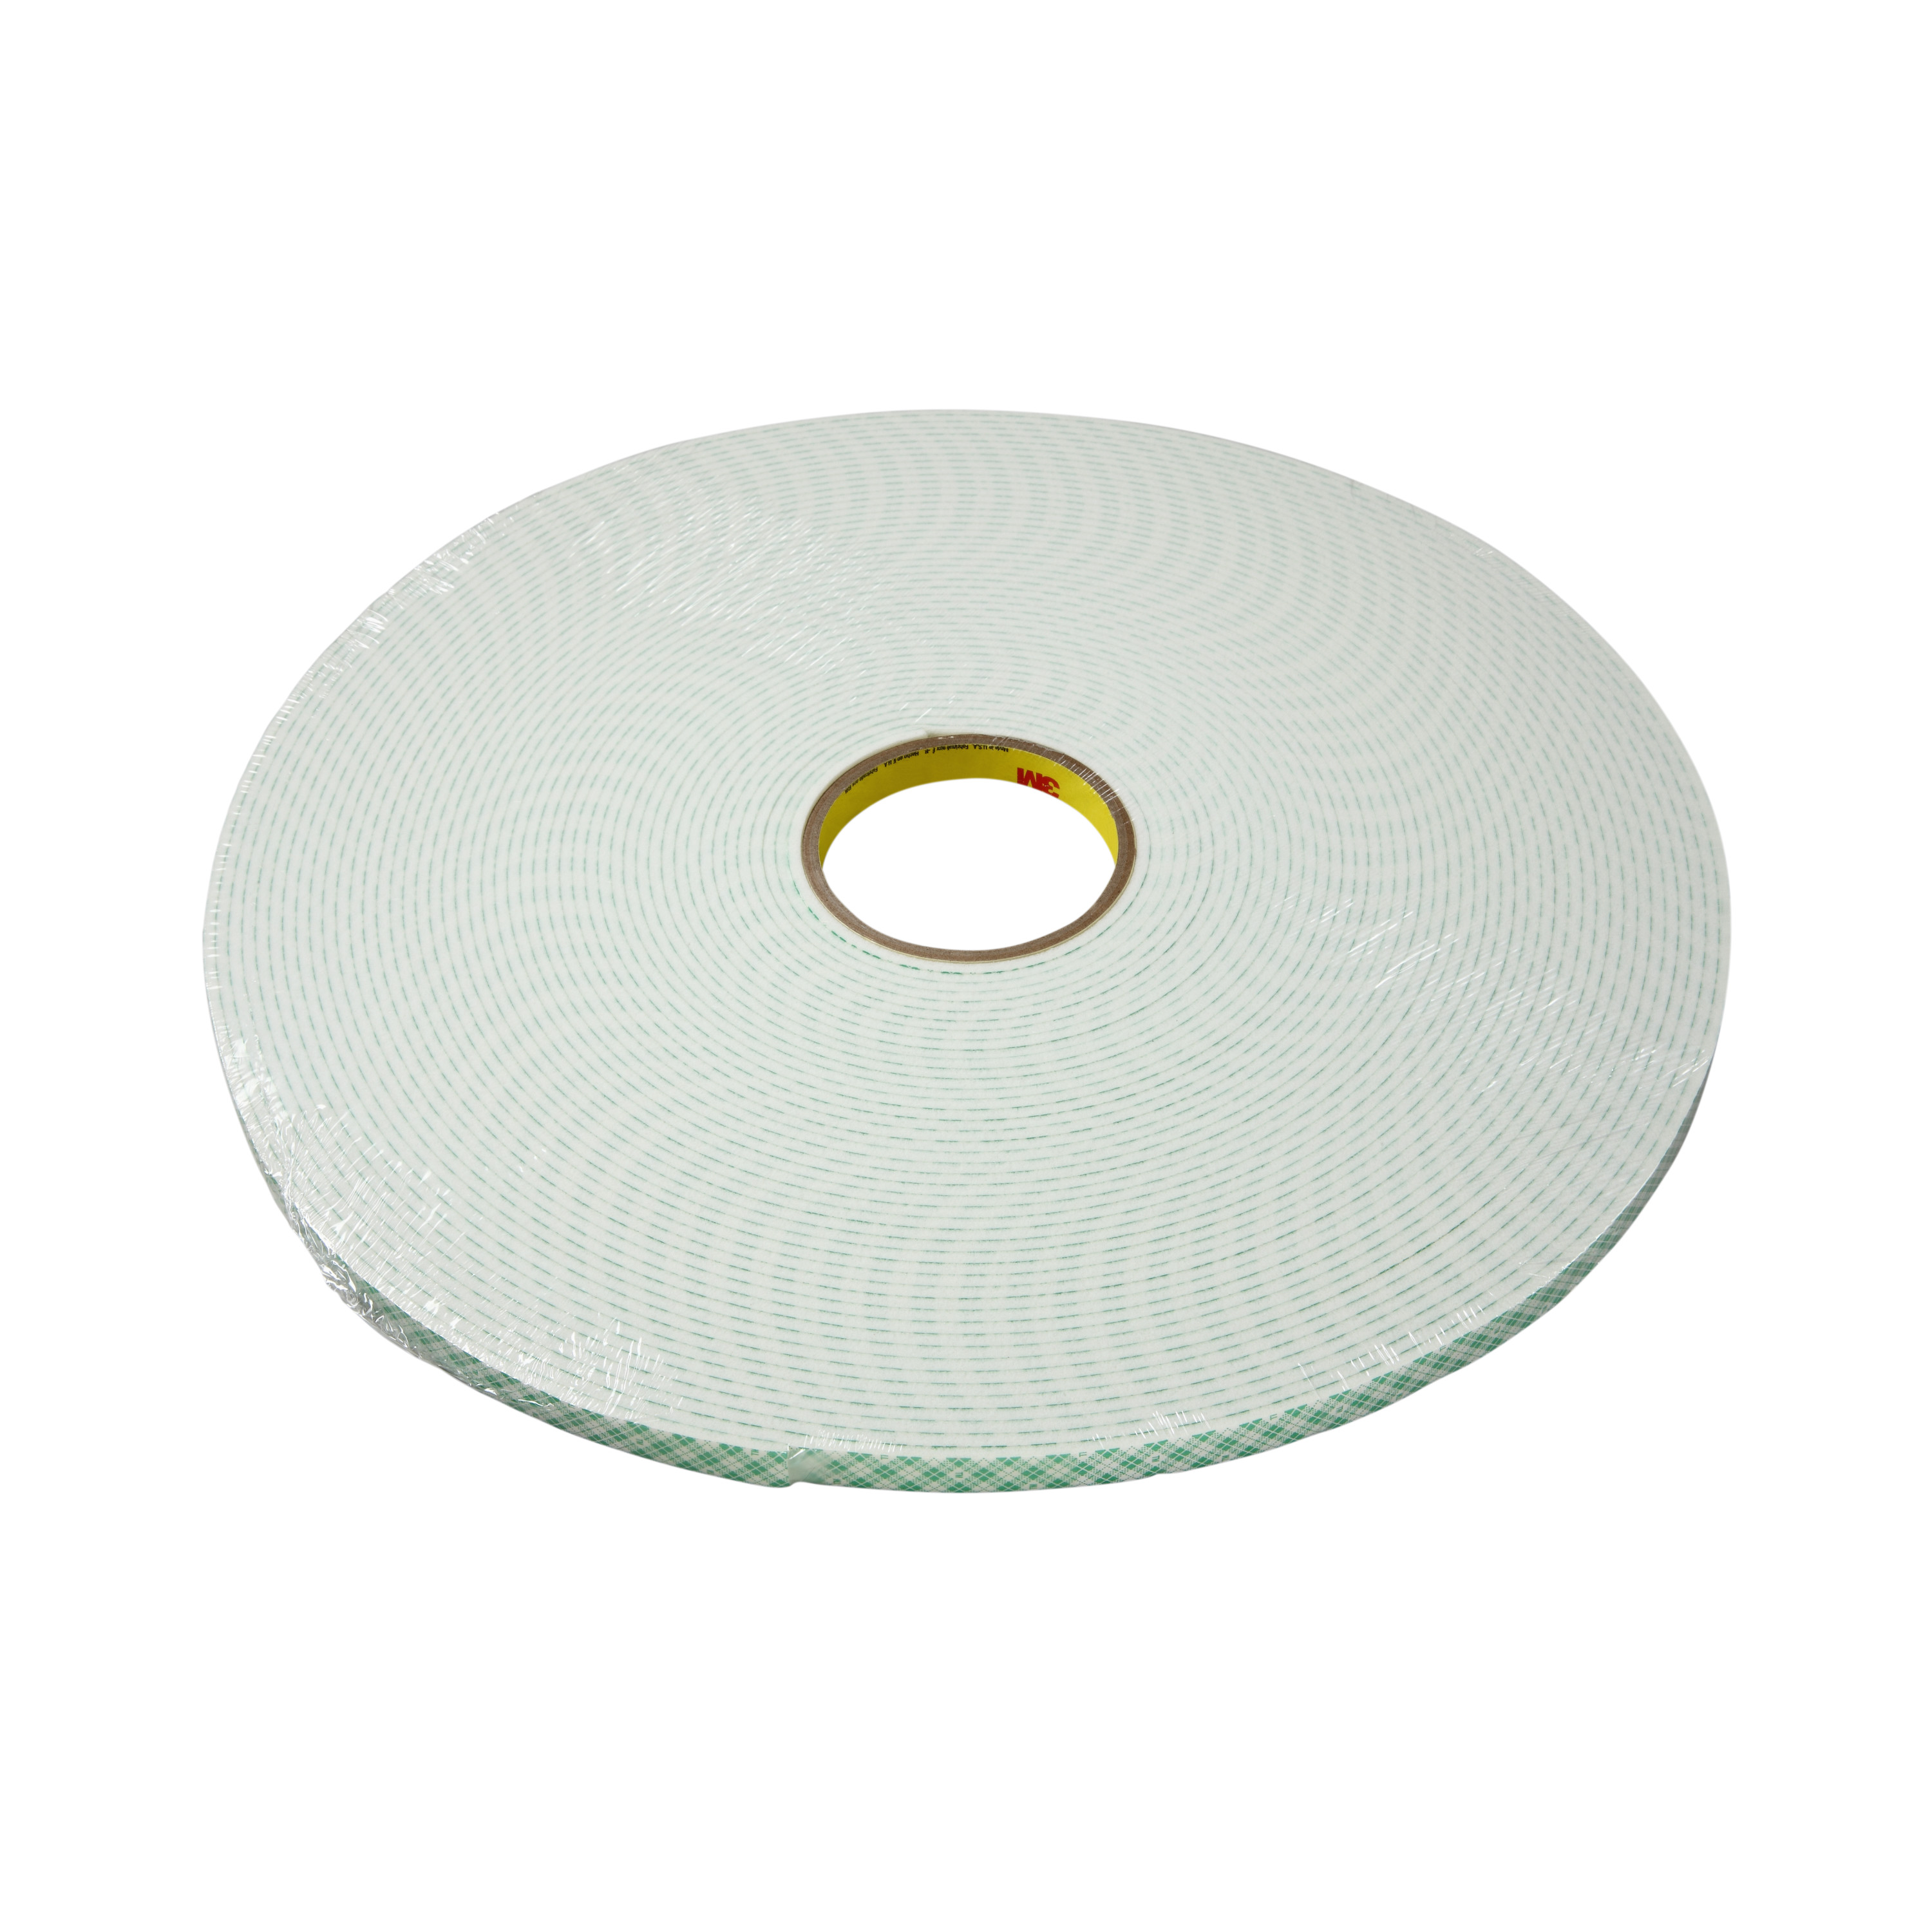 3M™ Double Coated Urethane Foam Tape 4008, Off White, 4 in x 36 yd, 125 mil, 2 rolls per case